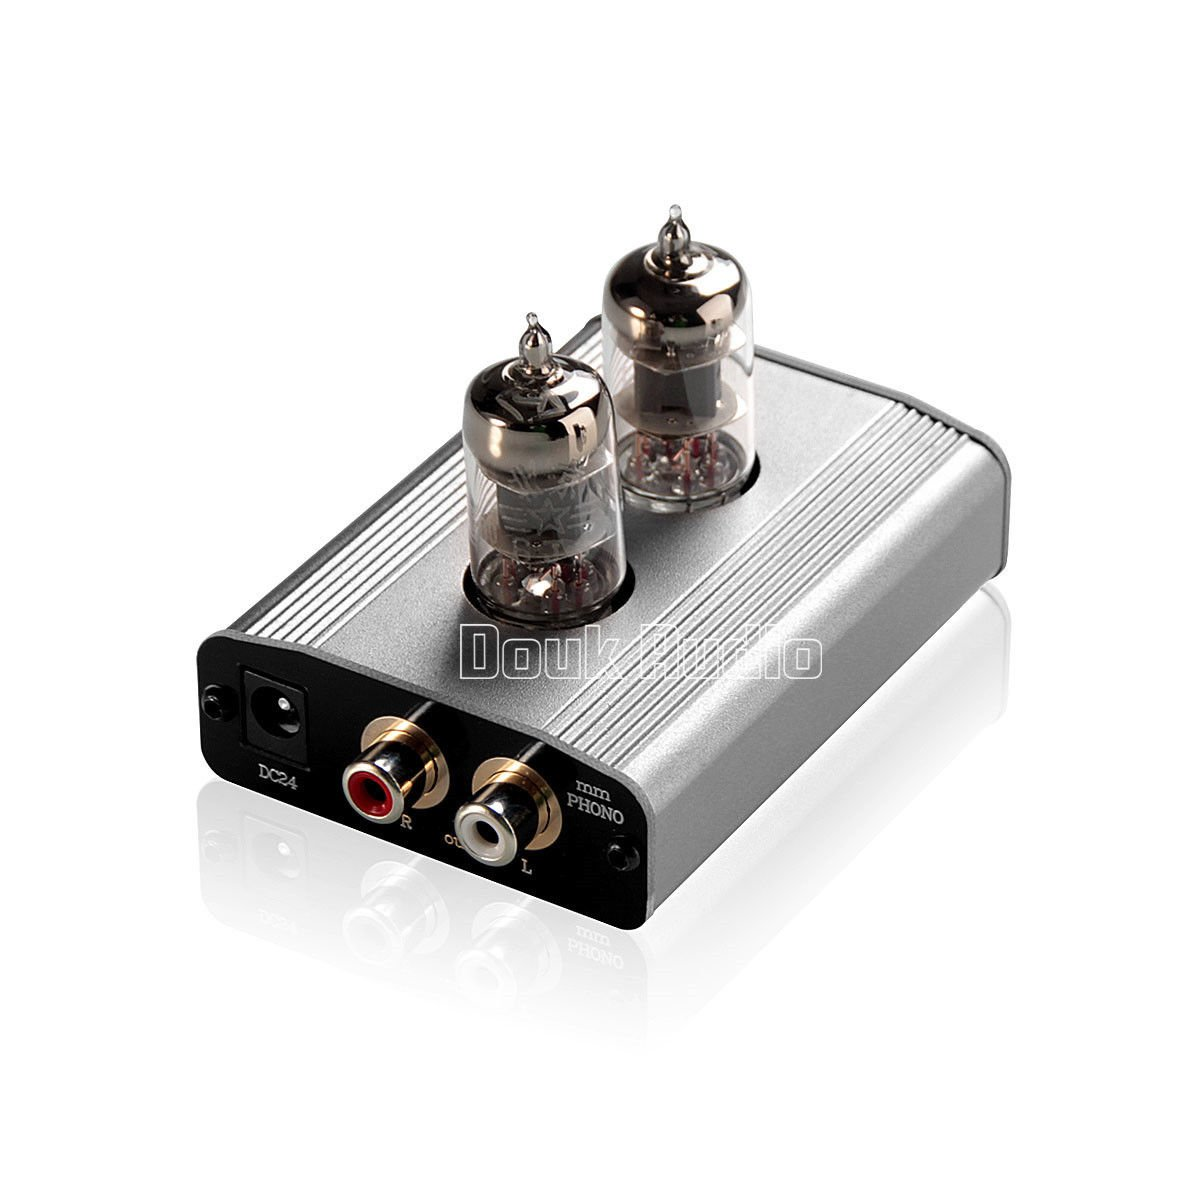 Douk Audio 6J1 Tube Phono Preamp MM RIAA Turntable Vinyl LP Record Player HiFi Class A Preamplifier Nobsound 4330356336